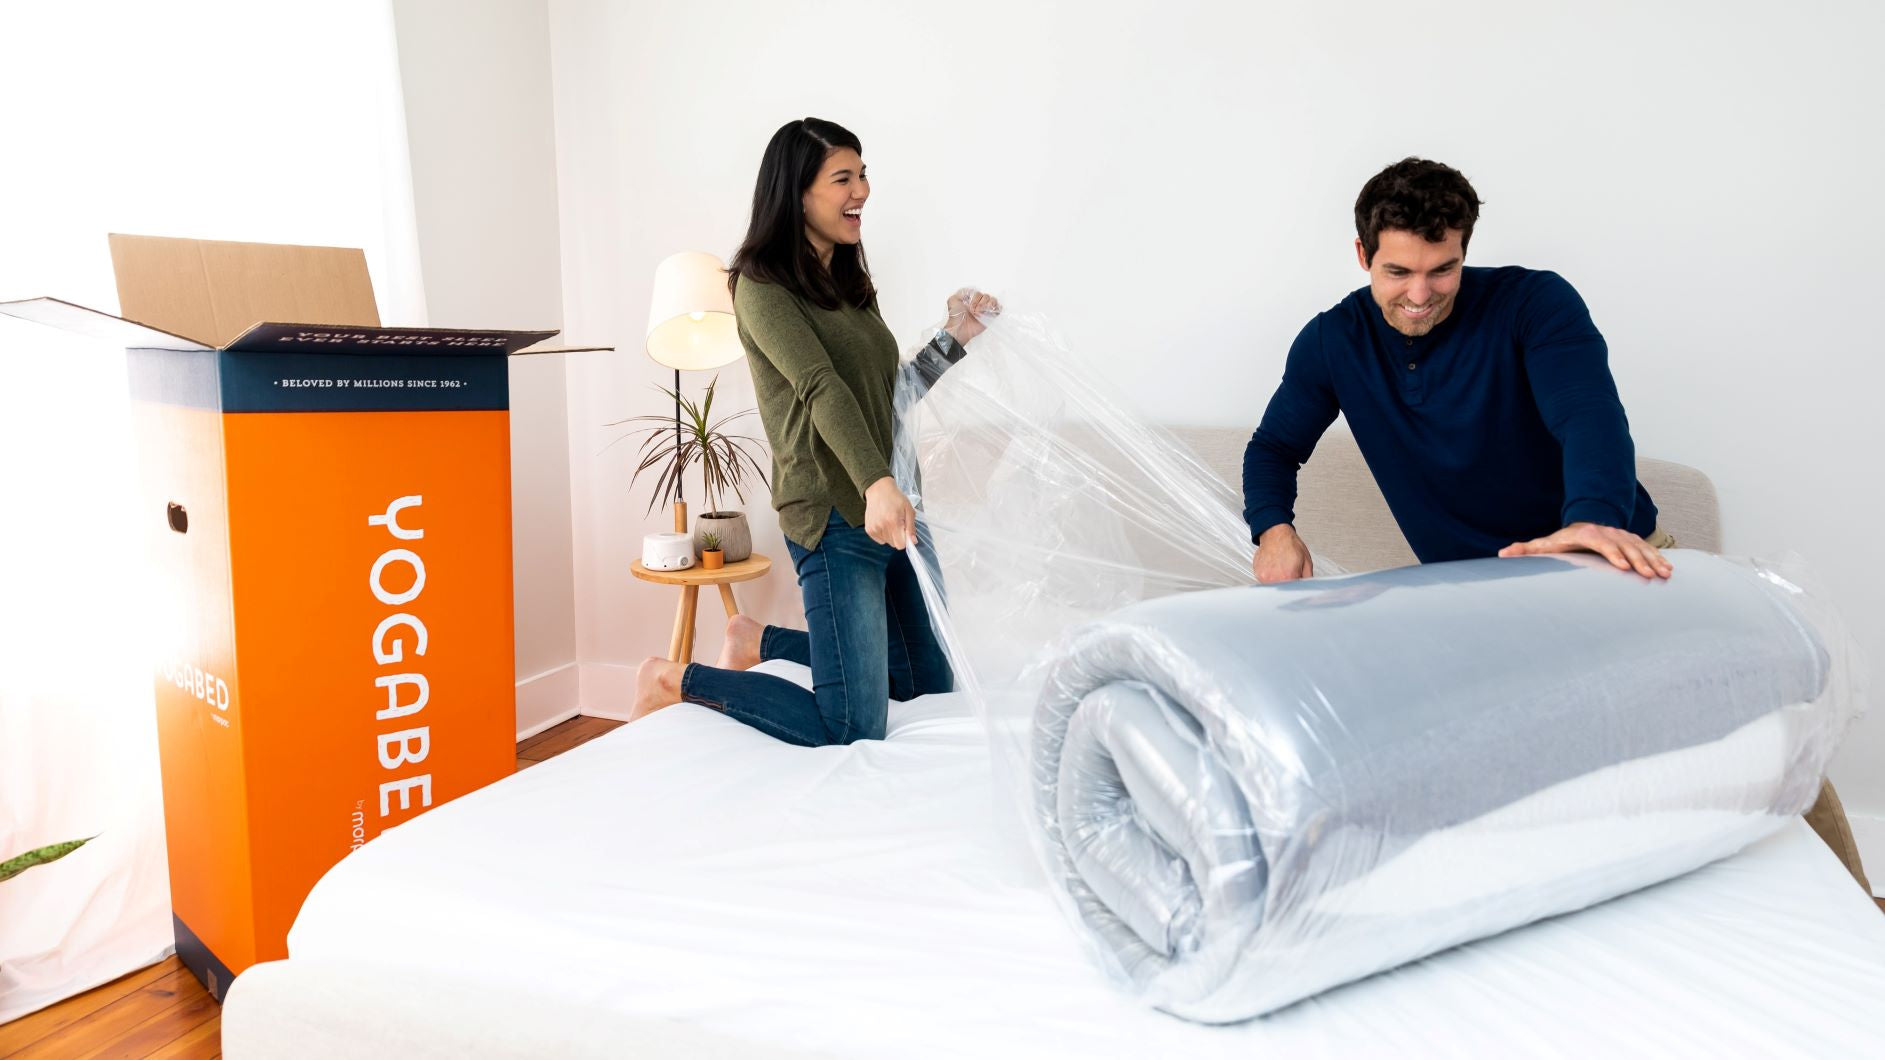 yogasleep yogabed bed in a box mattress easy setup